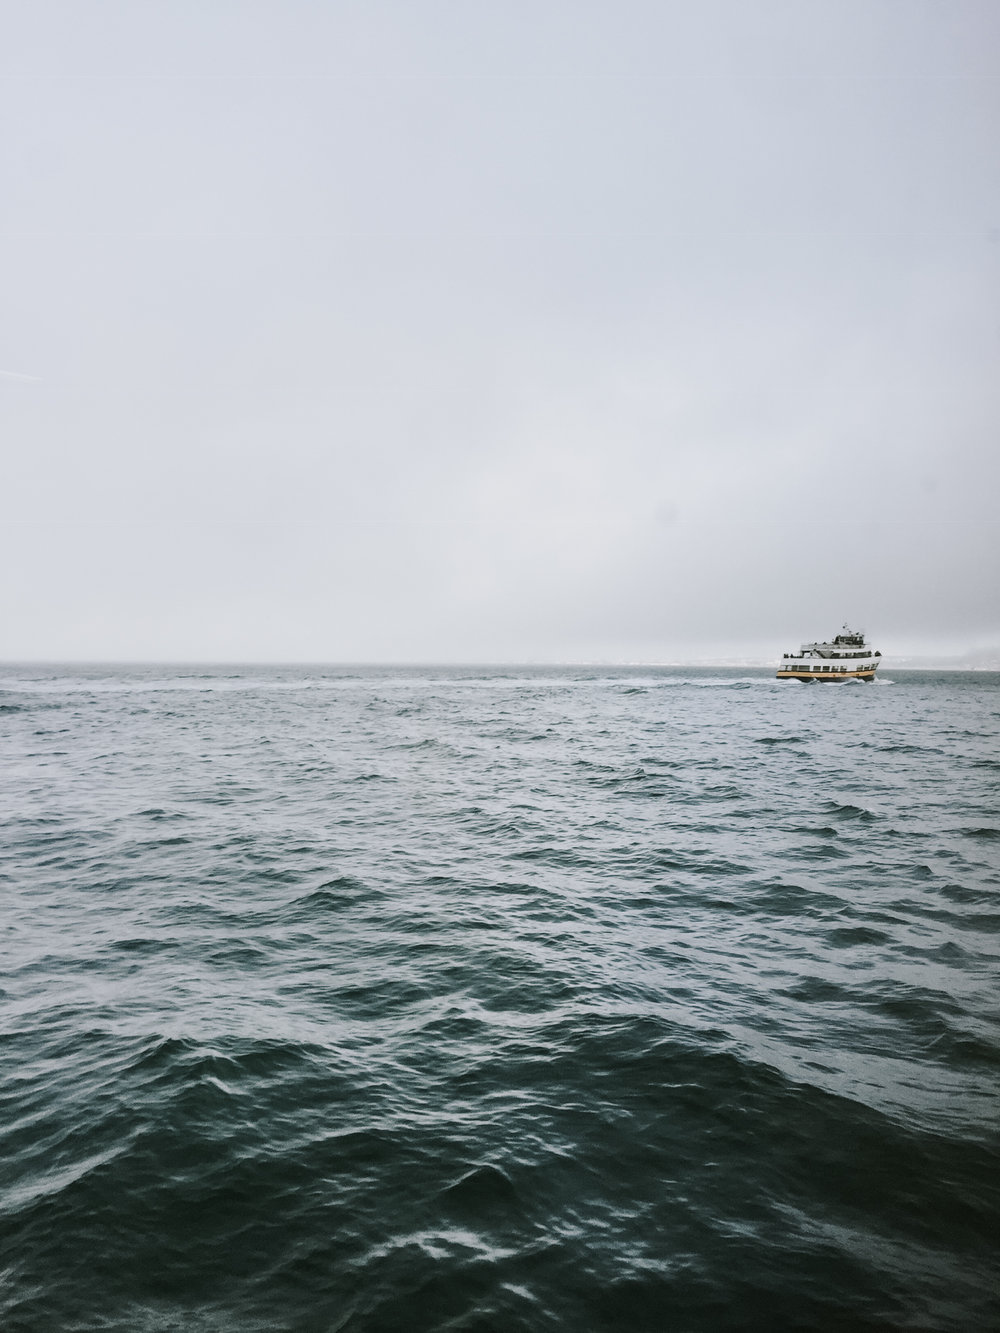 our trip to San Francisco - taking a ride of the ferry boat across the San Francisco bay